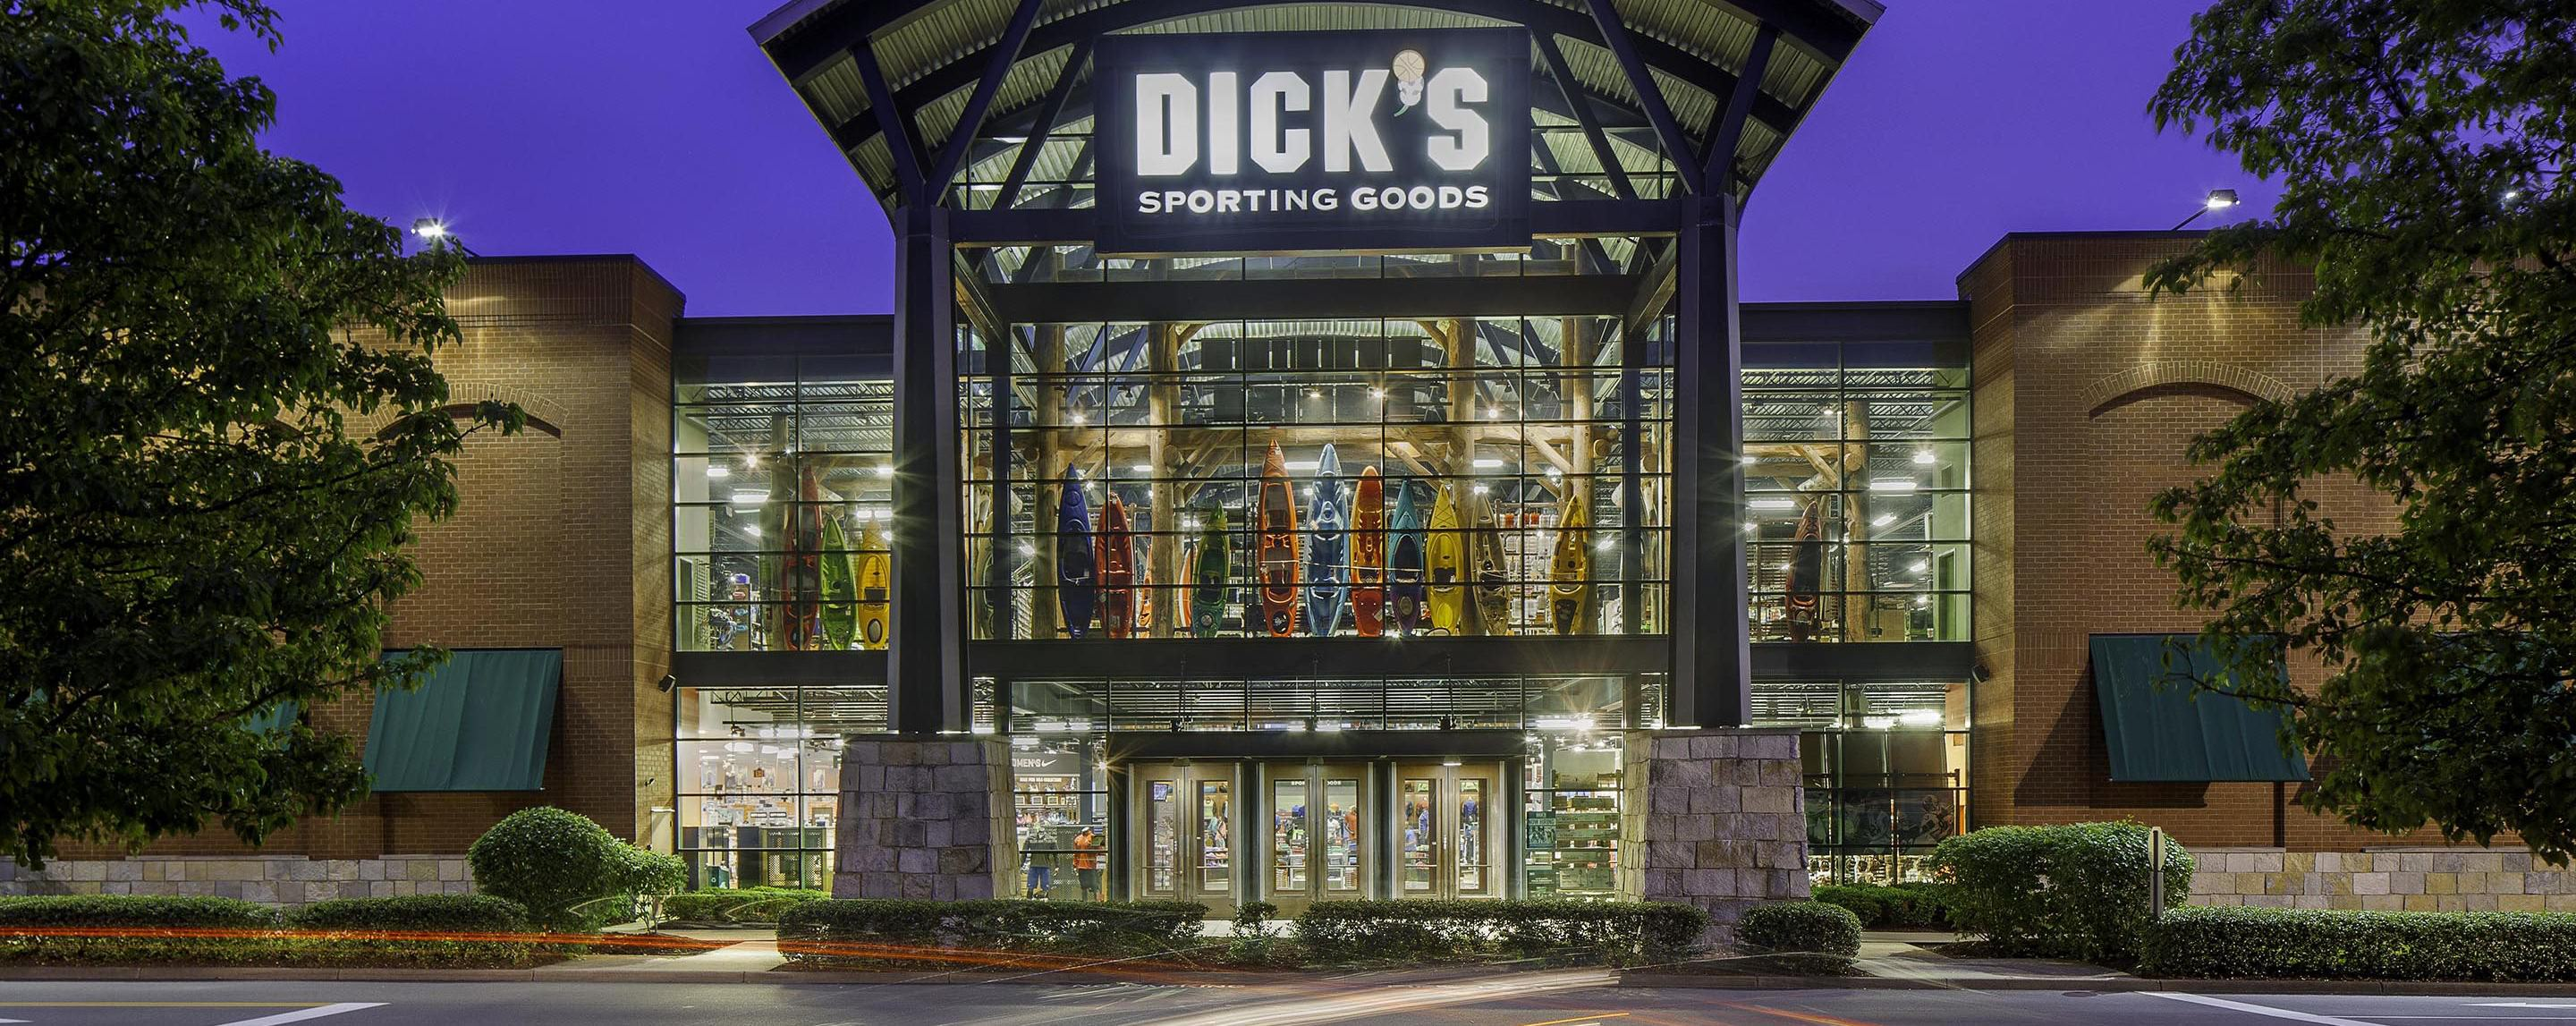 At Oxmoor Center, flowers and plants decorate the exterior entrance of Dick's Sporting Goods, which is illuminated at night from interior lights